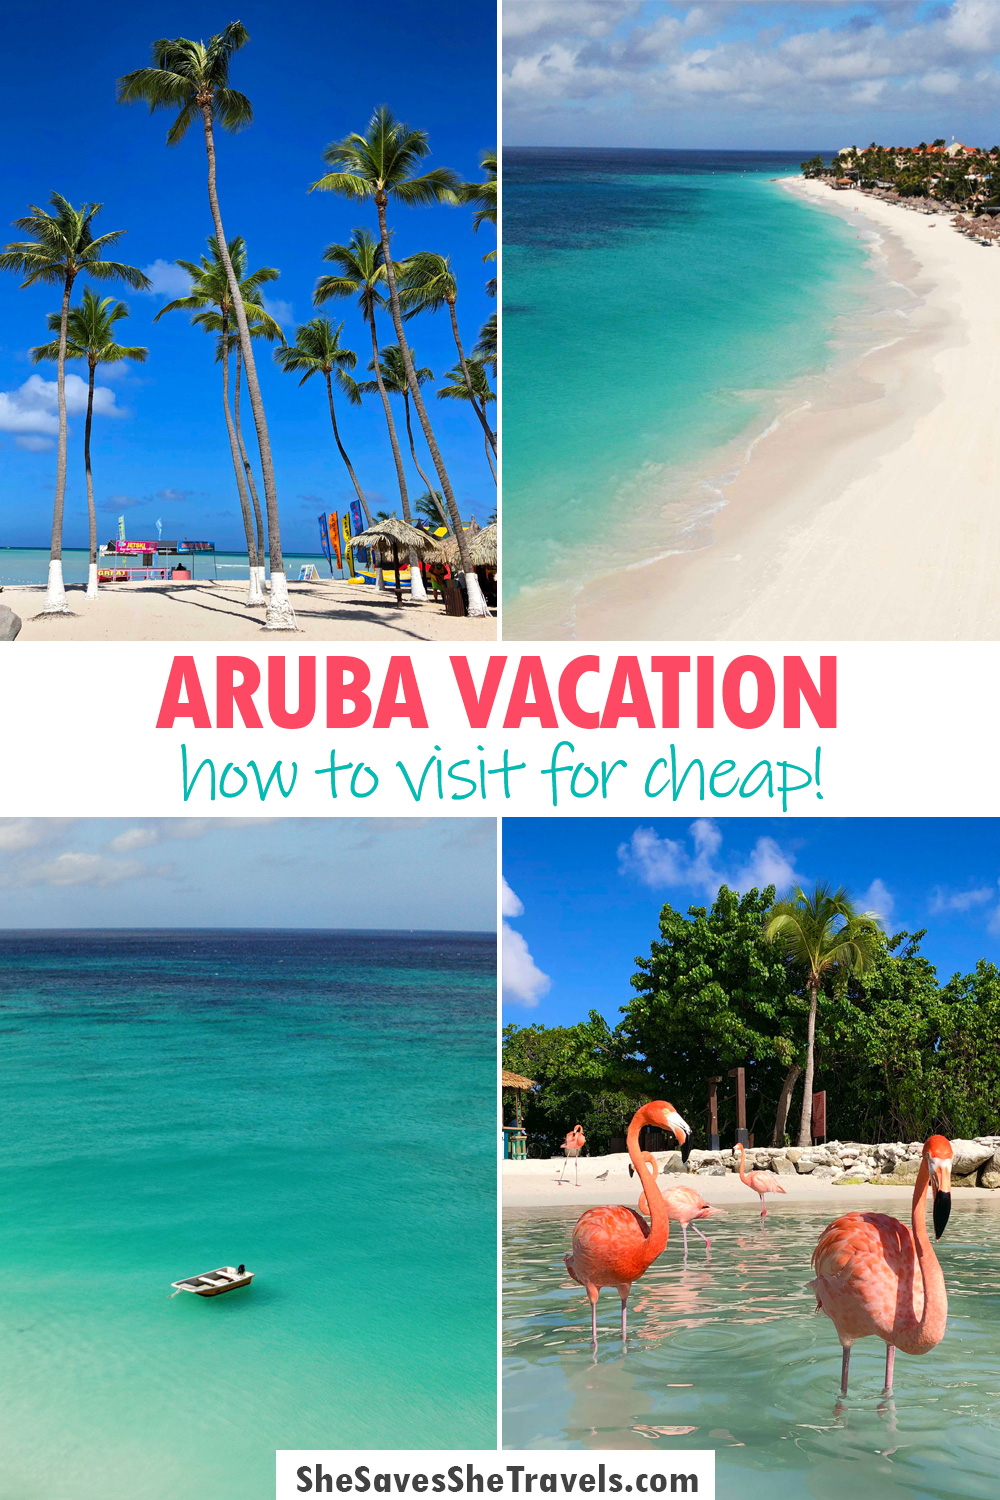 aruba vacation how to visit for cheap